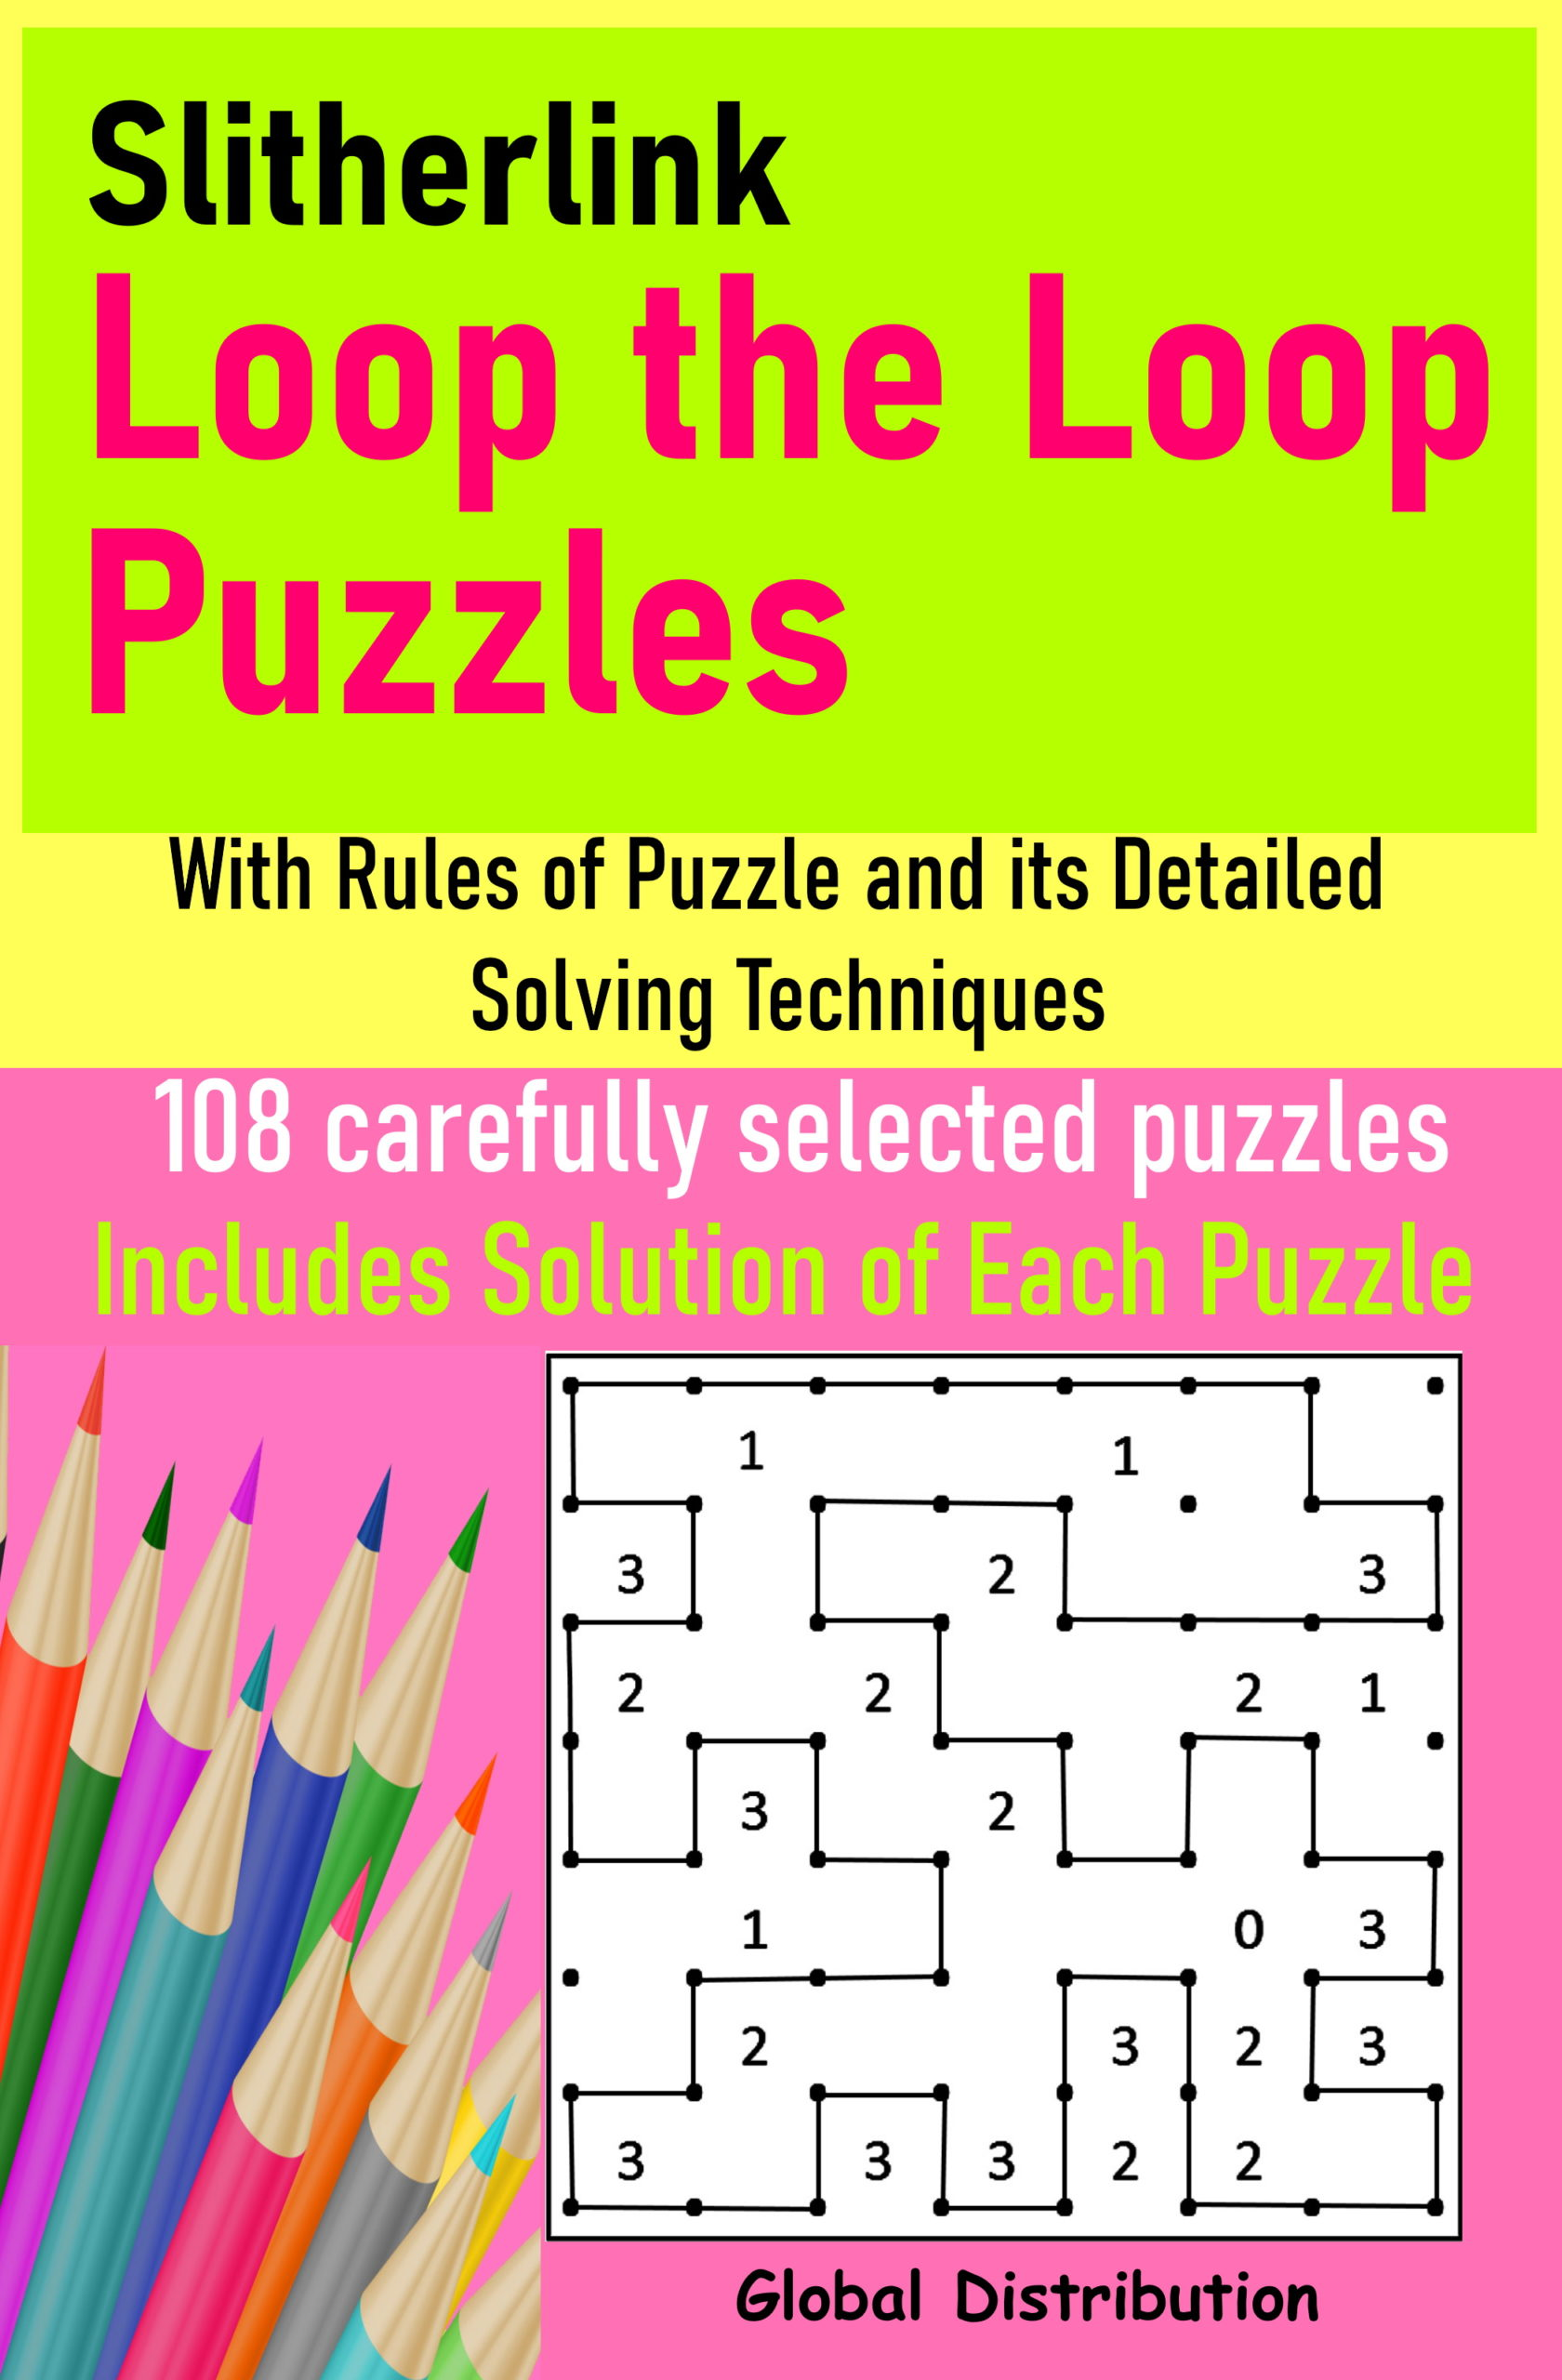 slither link loop the loop puzzles